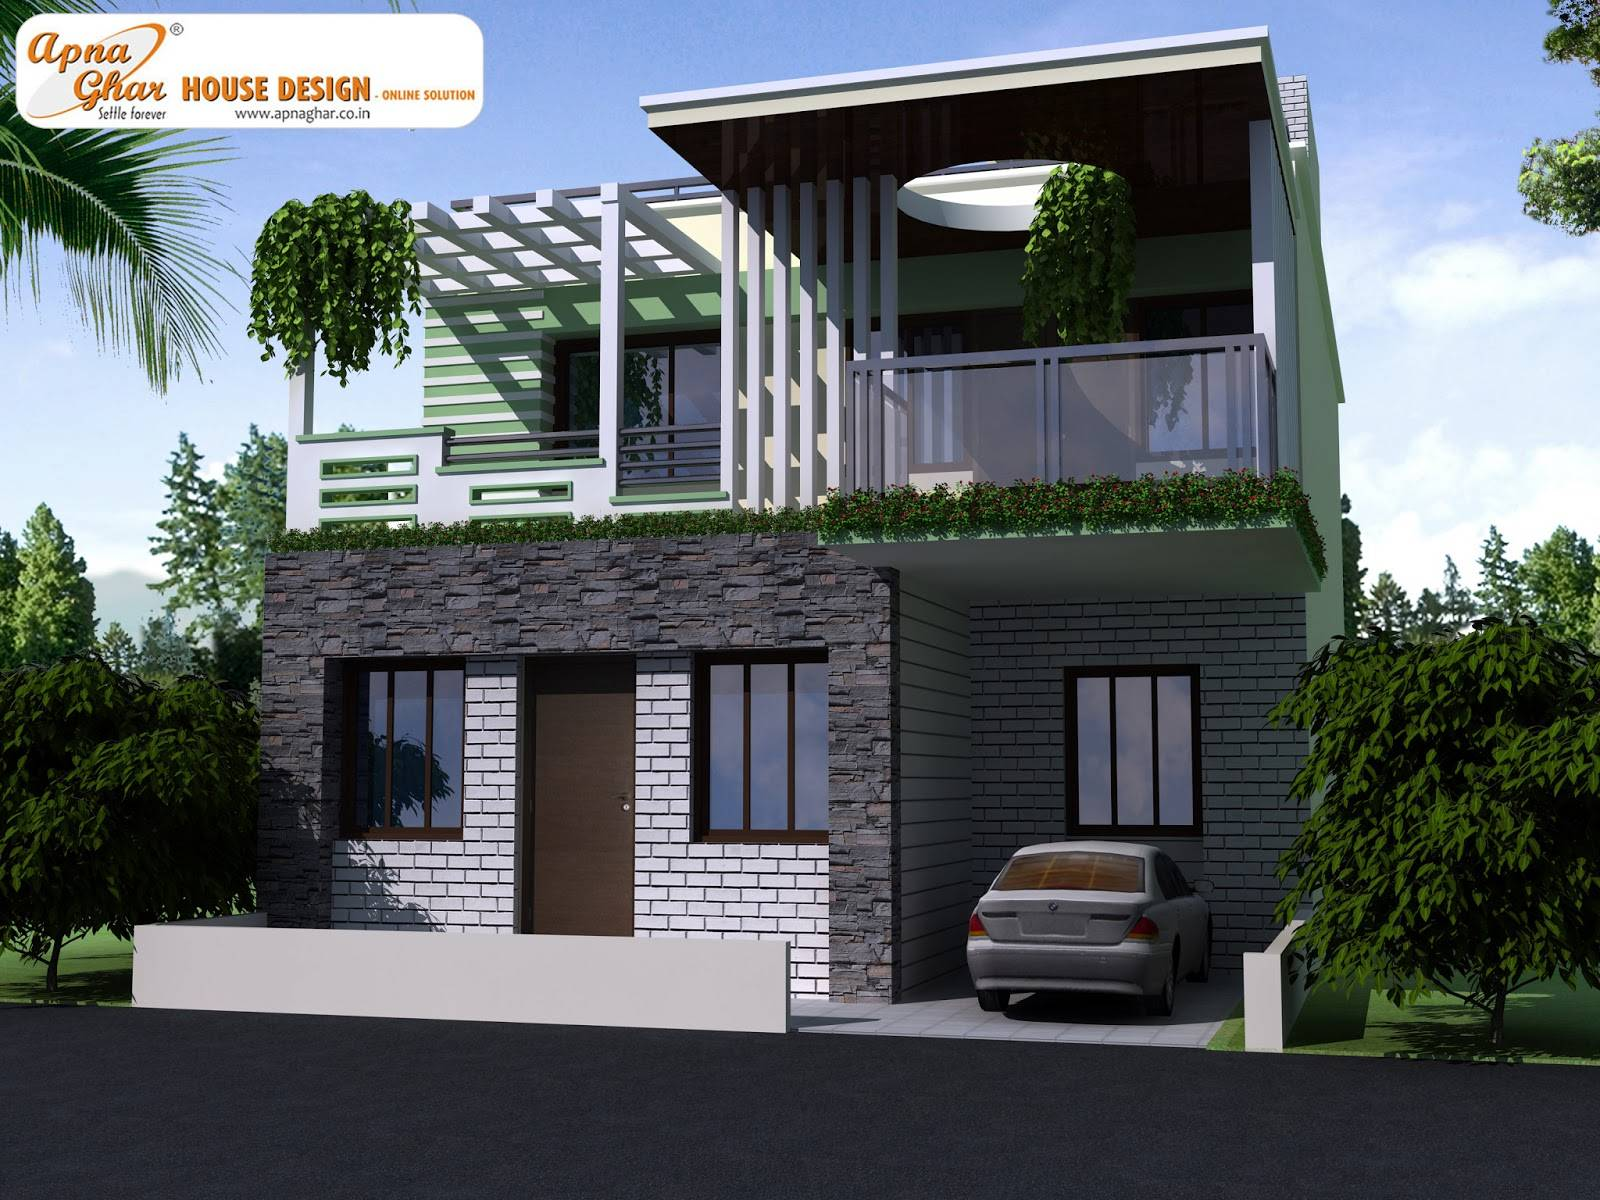 Decosee Modern Beautiful Duplex House Design Home Plans Blueprints 22289,White Ikea Bed Frame With Drawers